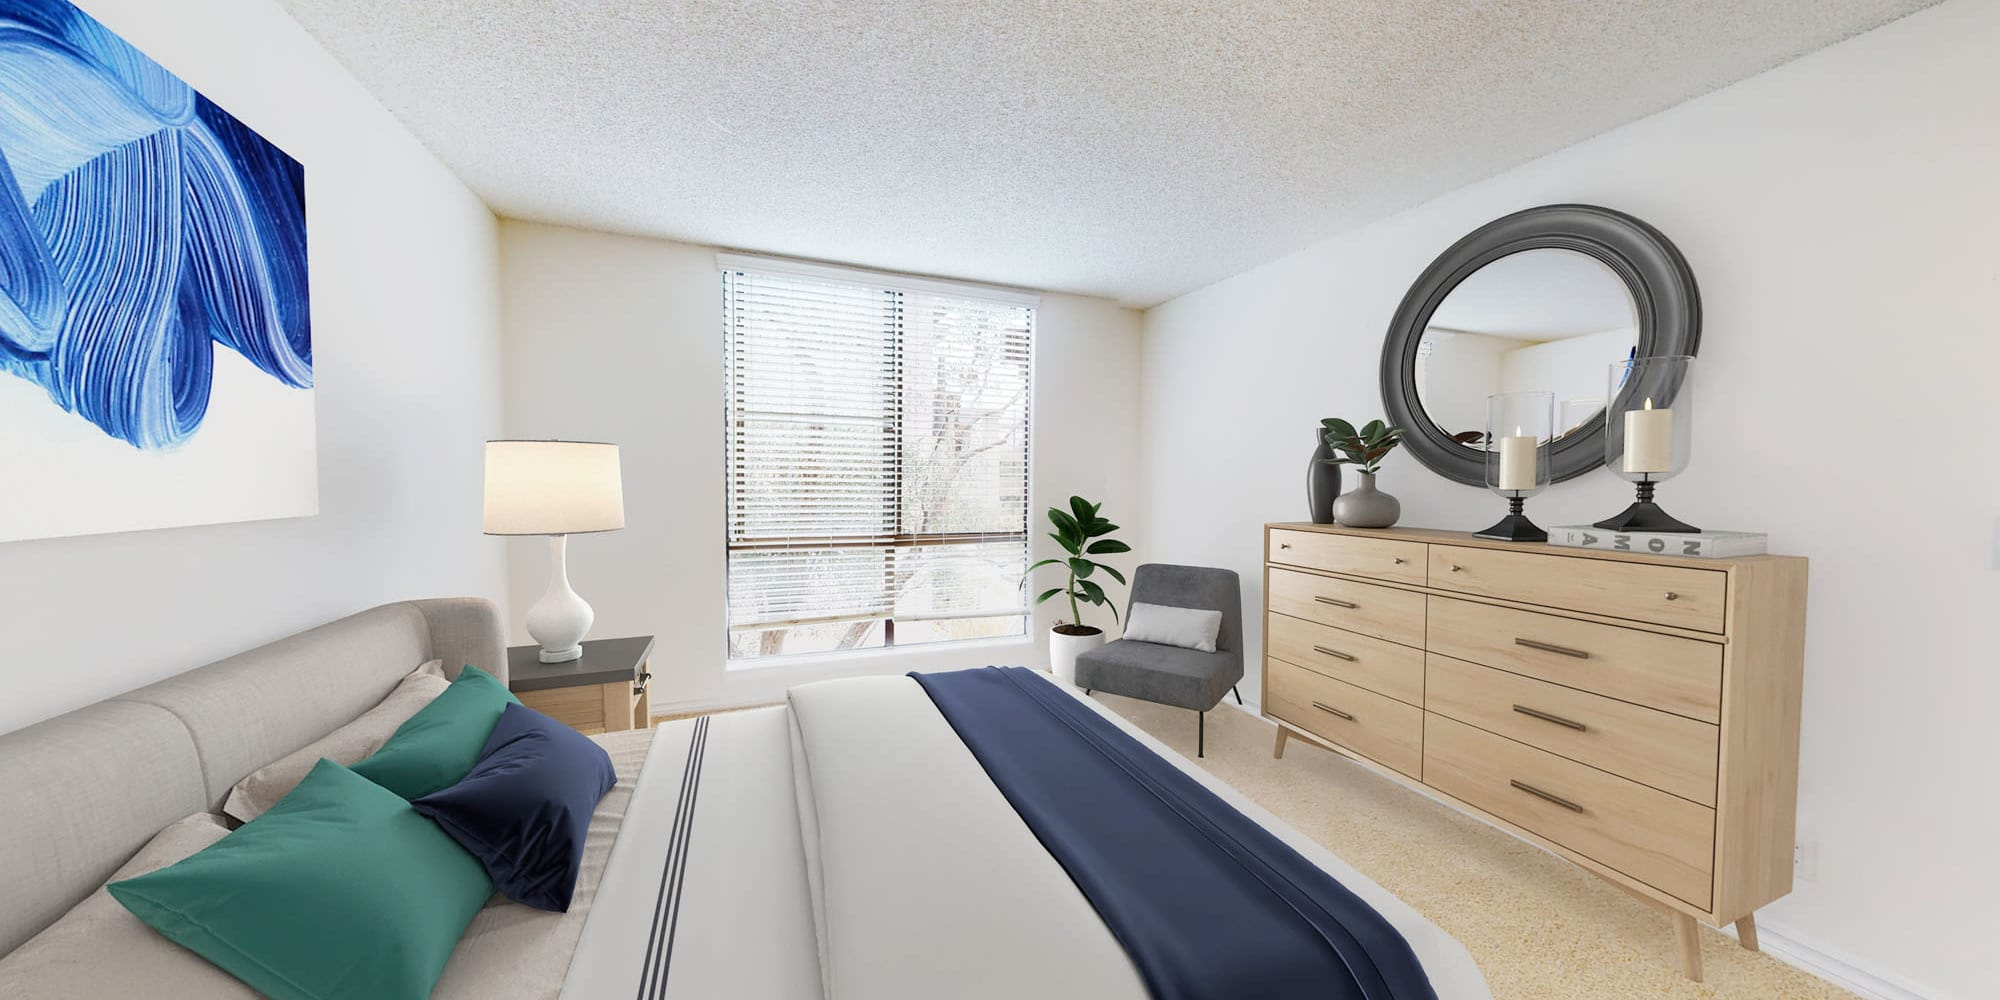 Well-furnished bedroom in a model apartment at Mariners Village in Marina del Rey, California